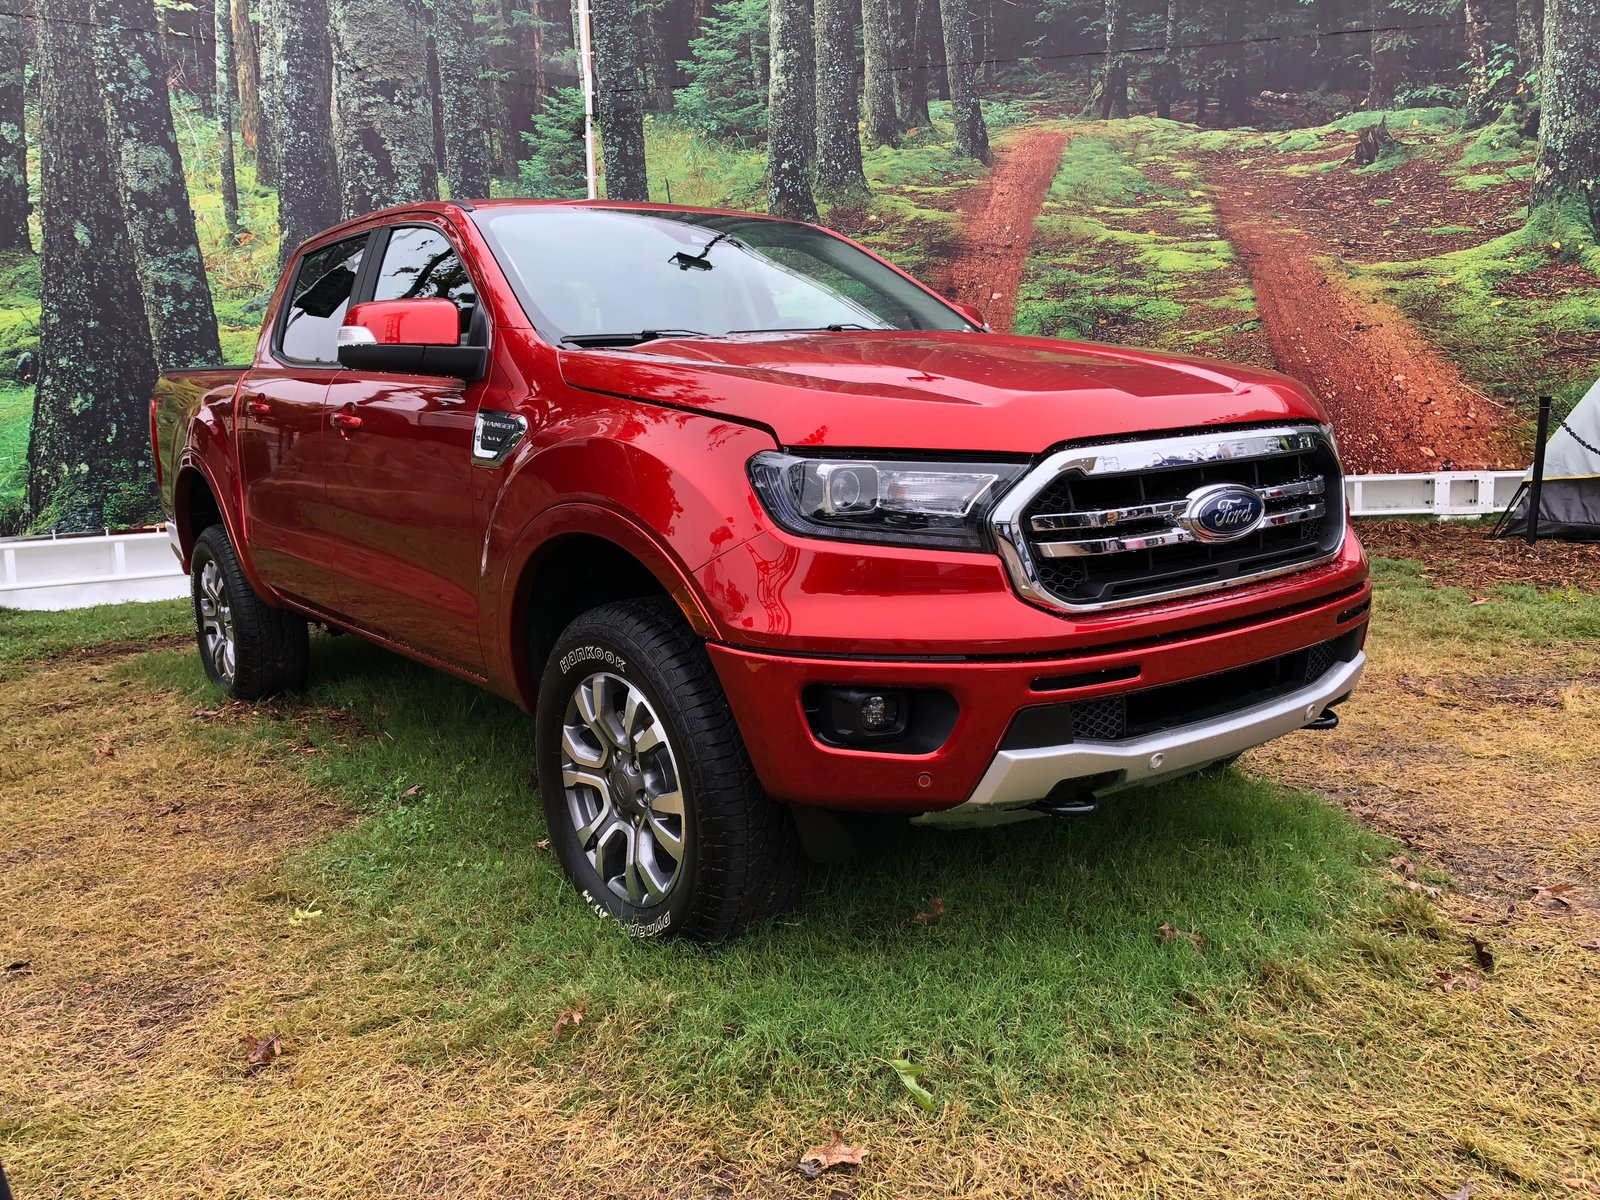 Hot Pepper Red Ranger Club Thread 2019 Ford Ranger And